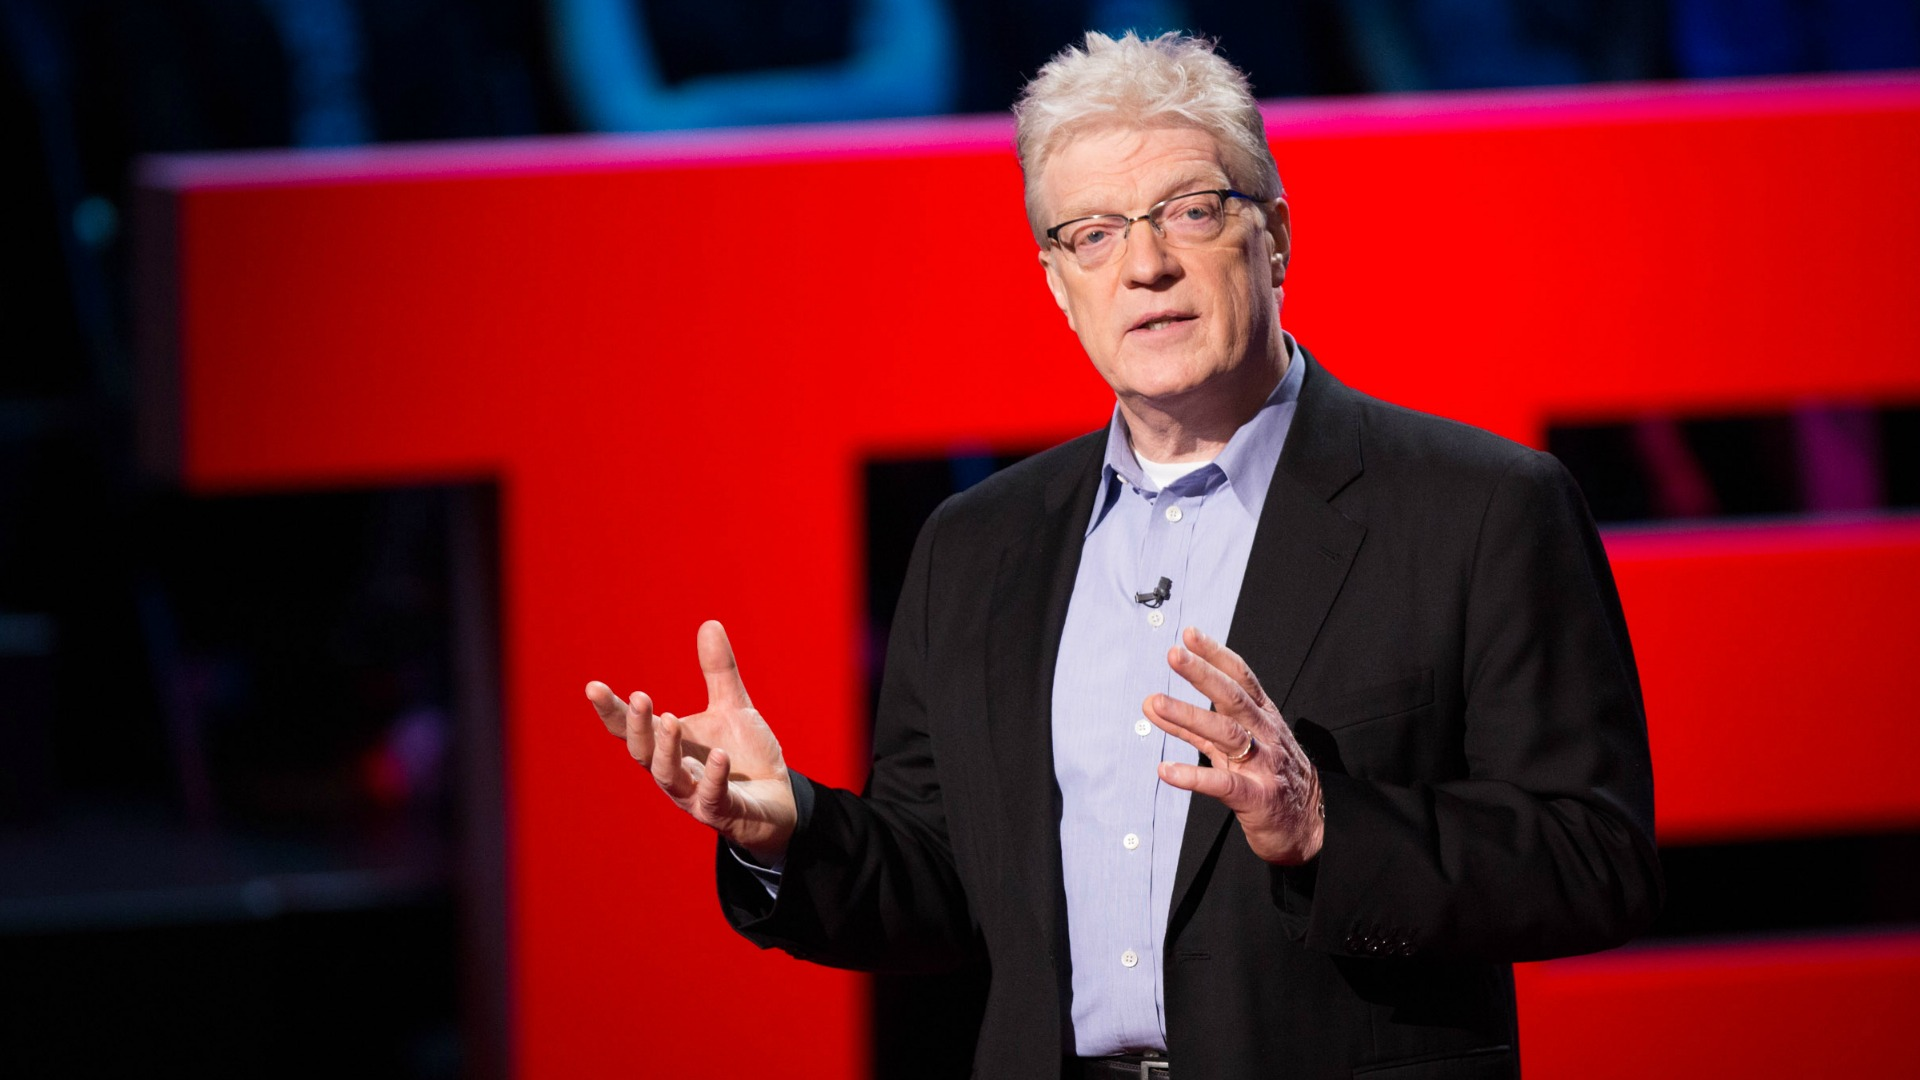 Ken Robinson TED